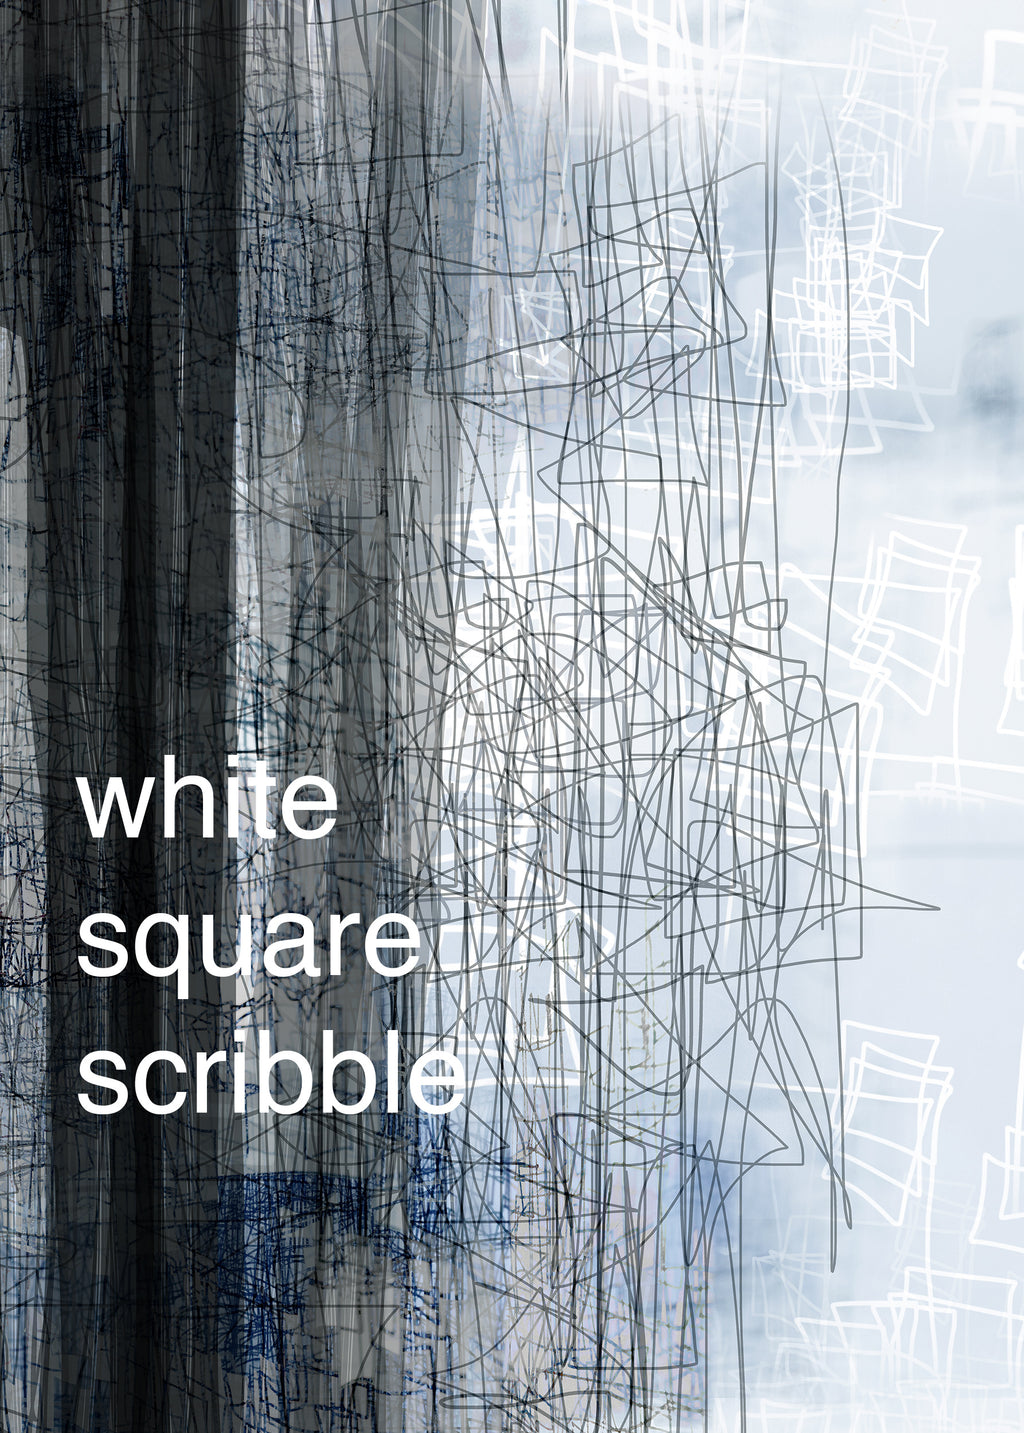 Fraser Crowe Swatch art print White Square Scribble, ethical fashion, sustainable fashion, designer clothes, plus size clothing, textile print clothing, luxury online fashion, slow fashion